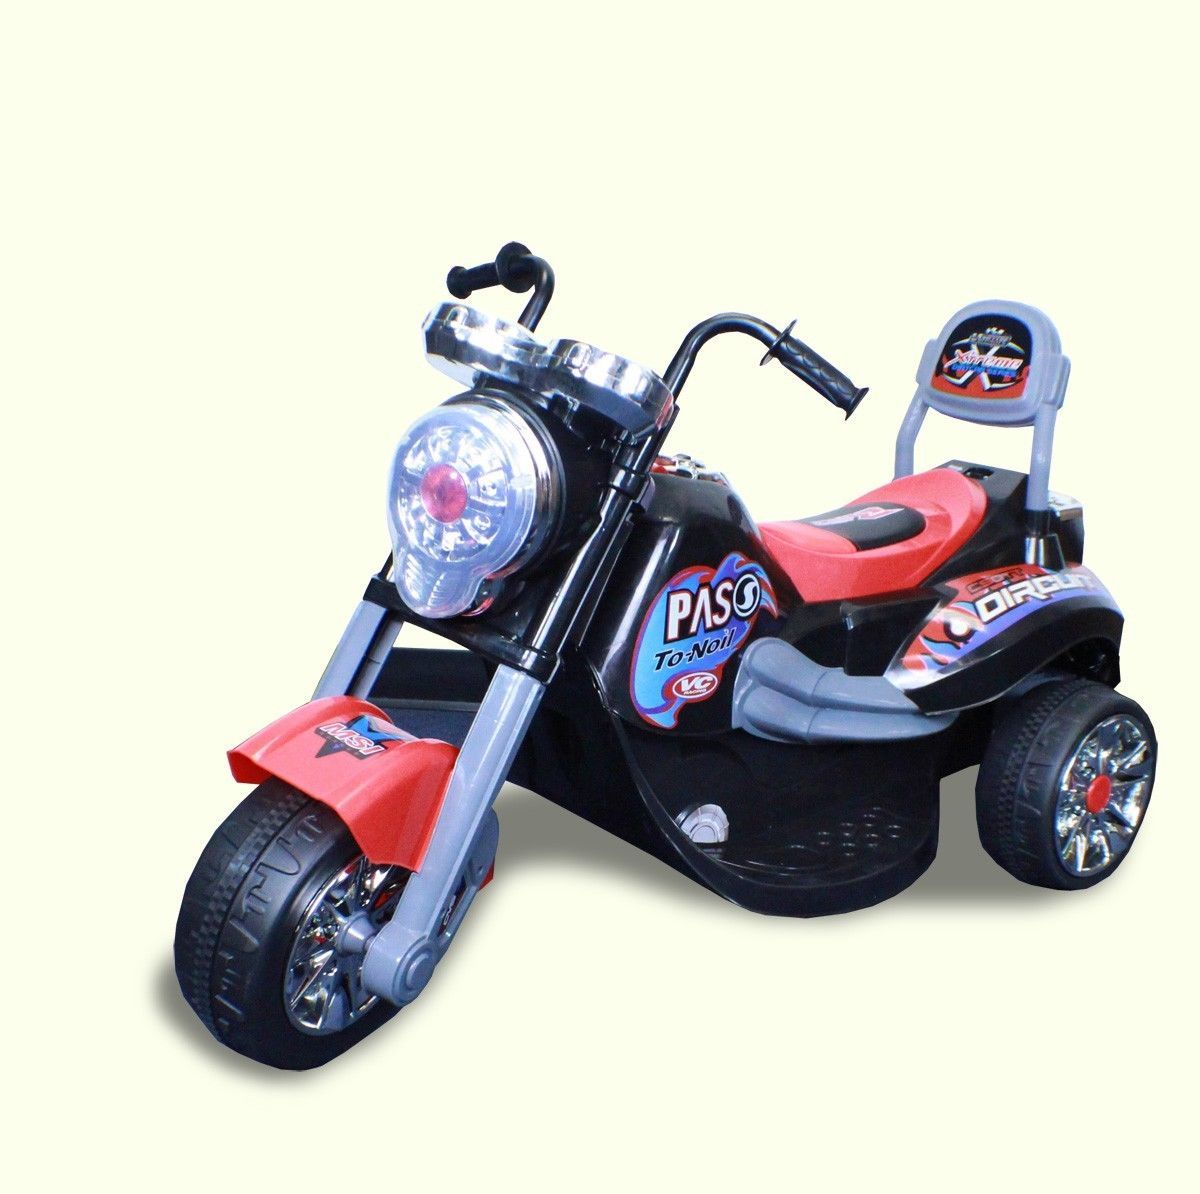 Toys cars for kids  New Battery Powered Kids Ride On Toy Chopper Motorcycle Car  Wheel